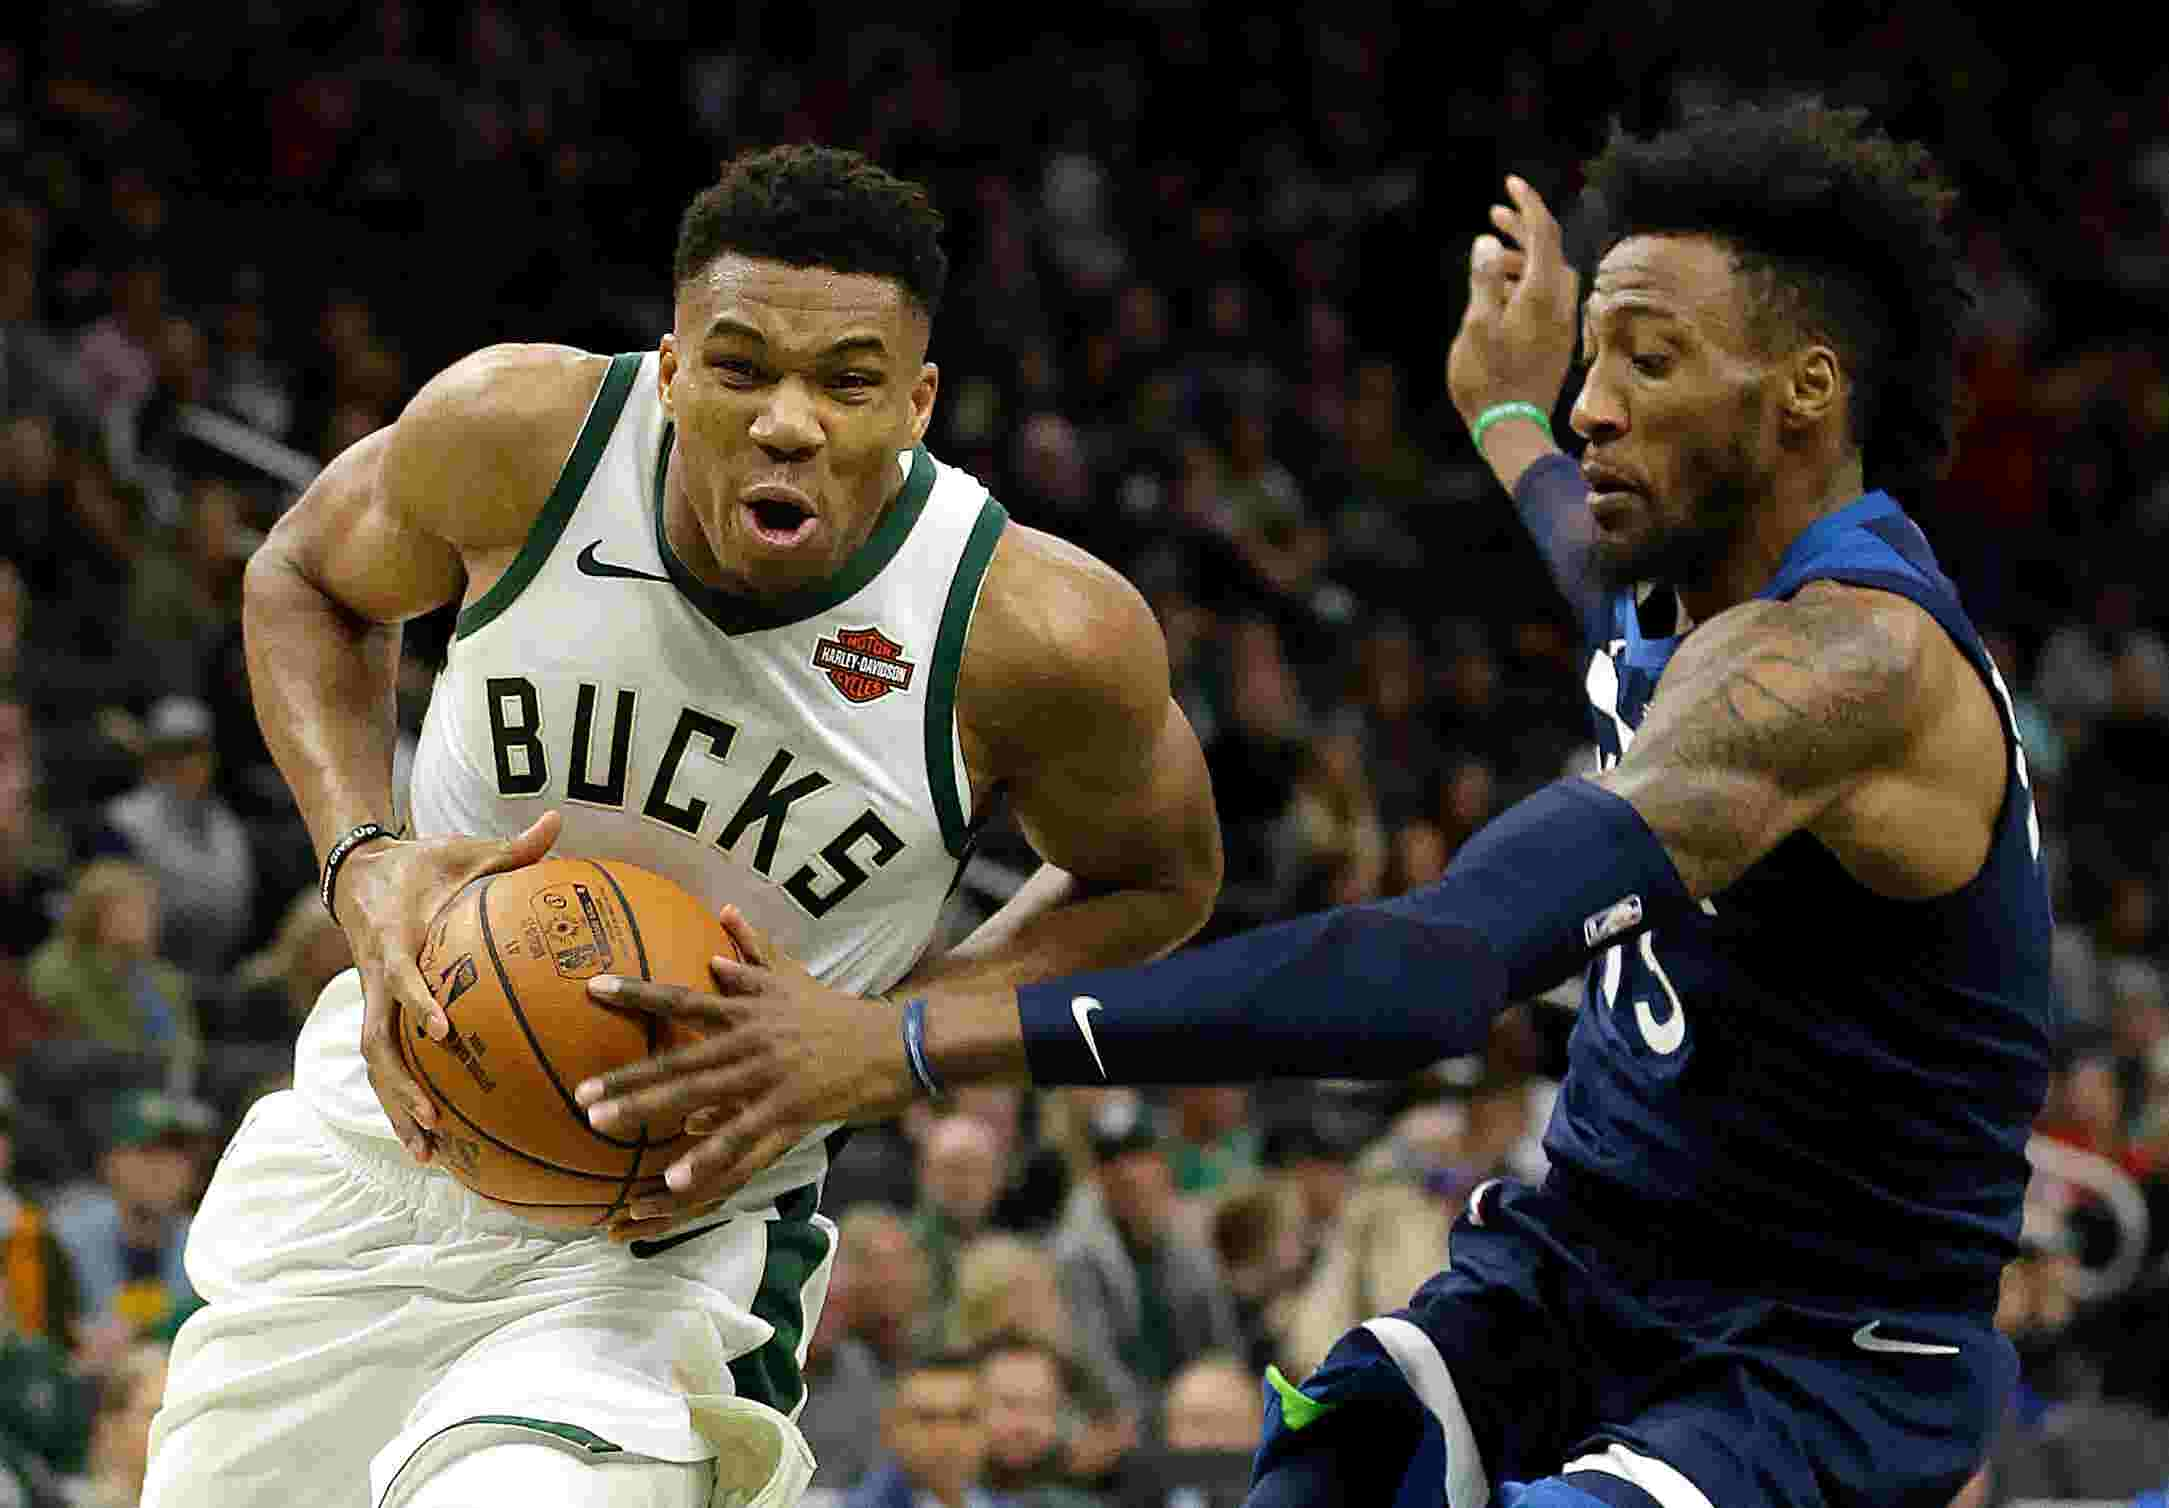 What to expect from The Bucks this year